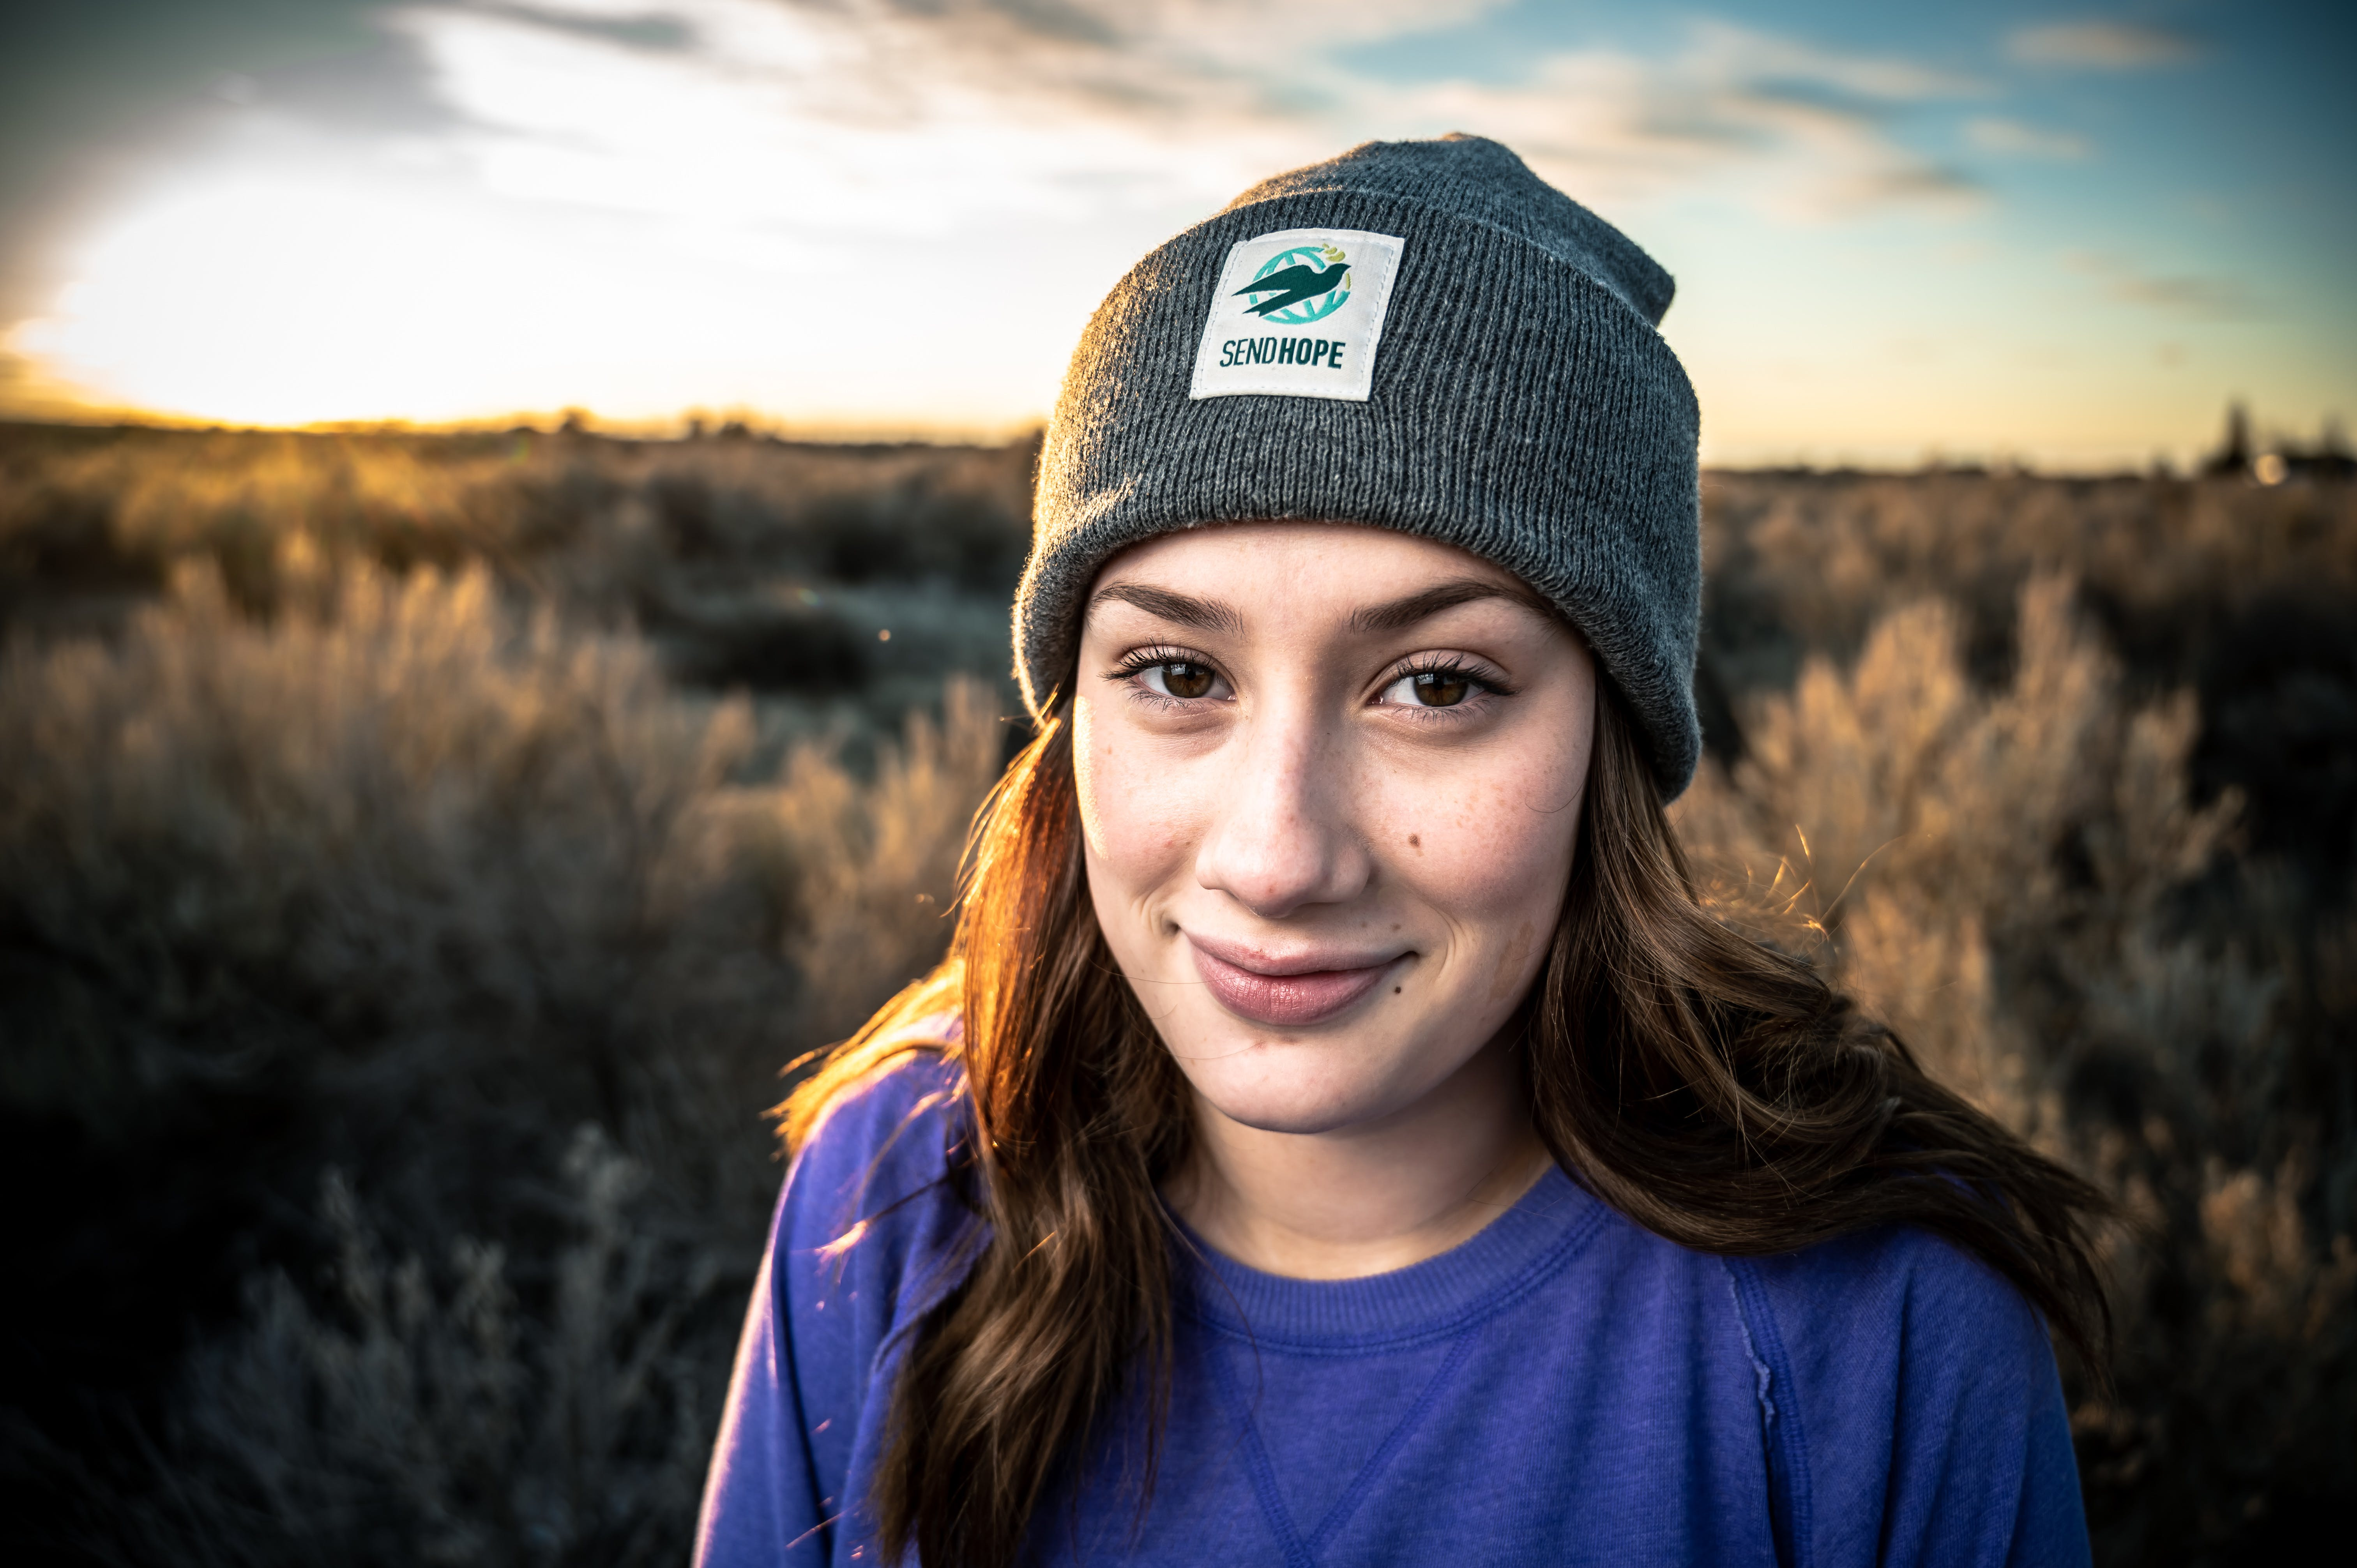 Woman Wearing Blue Shirt And Grey Beanie